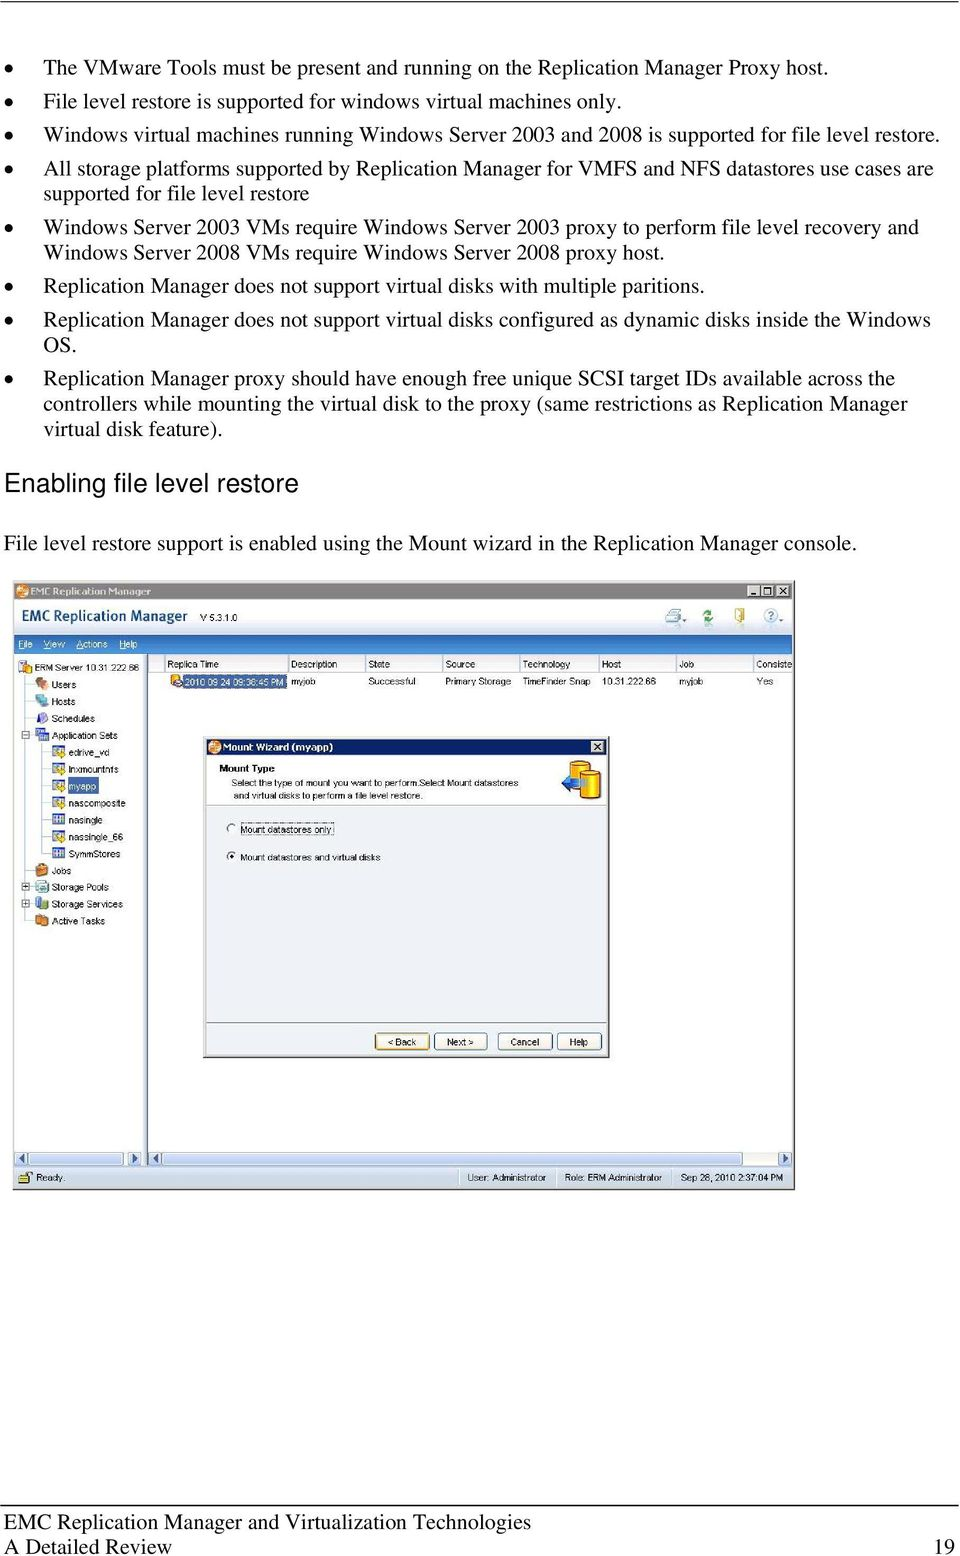 All storage platforms supported by Replication Manager for VMFS and NFS datastores use cases are supported for file level restore Windows Server 2003 VMs require Windows Server 2003 proxy to perform